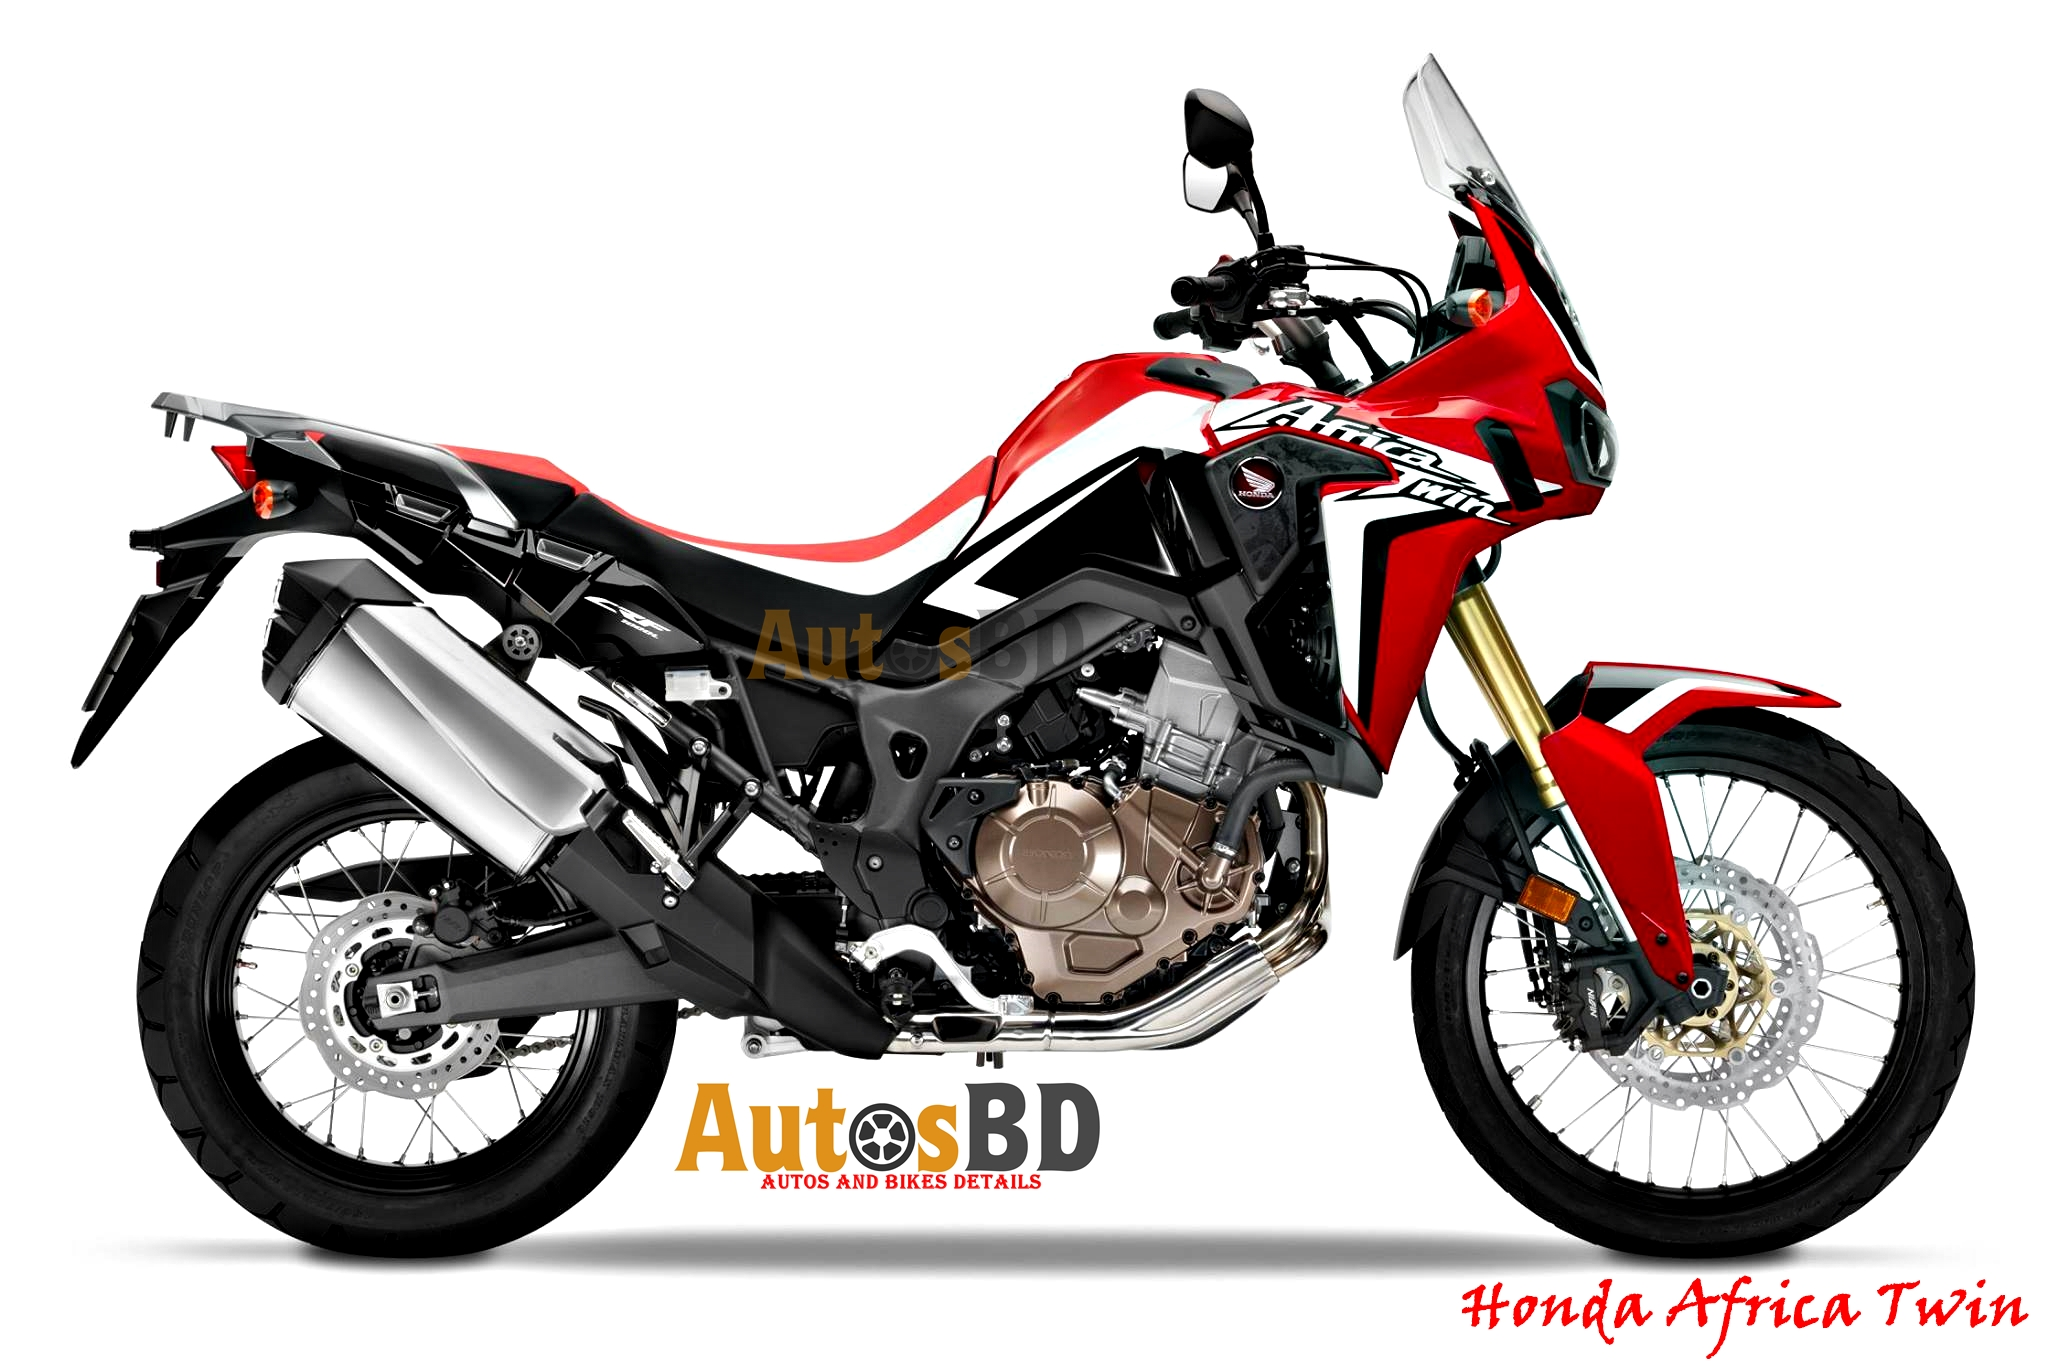 Honda Africa Twin Motorcycle Specification